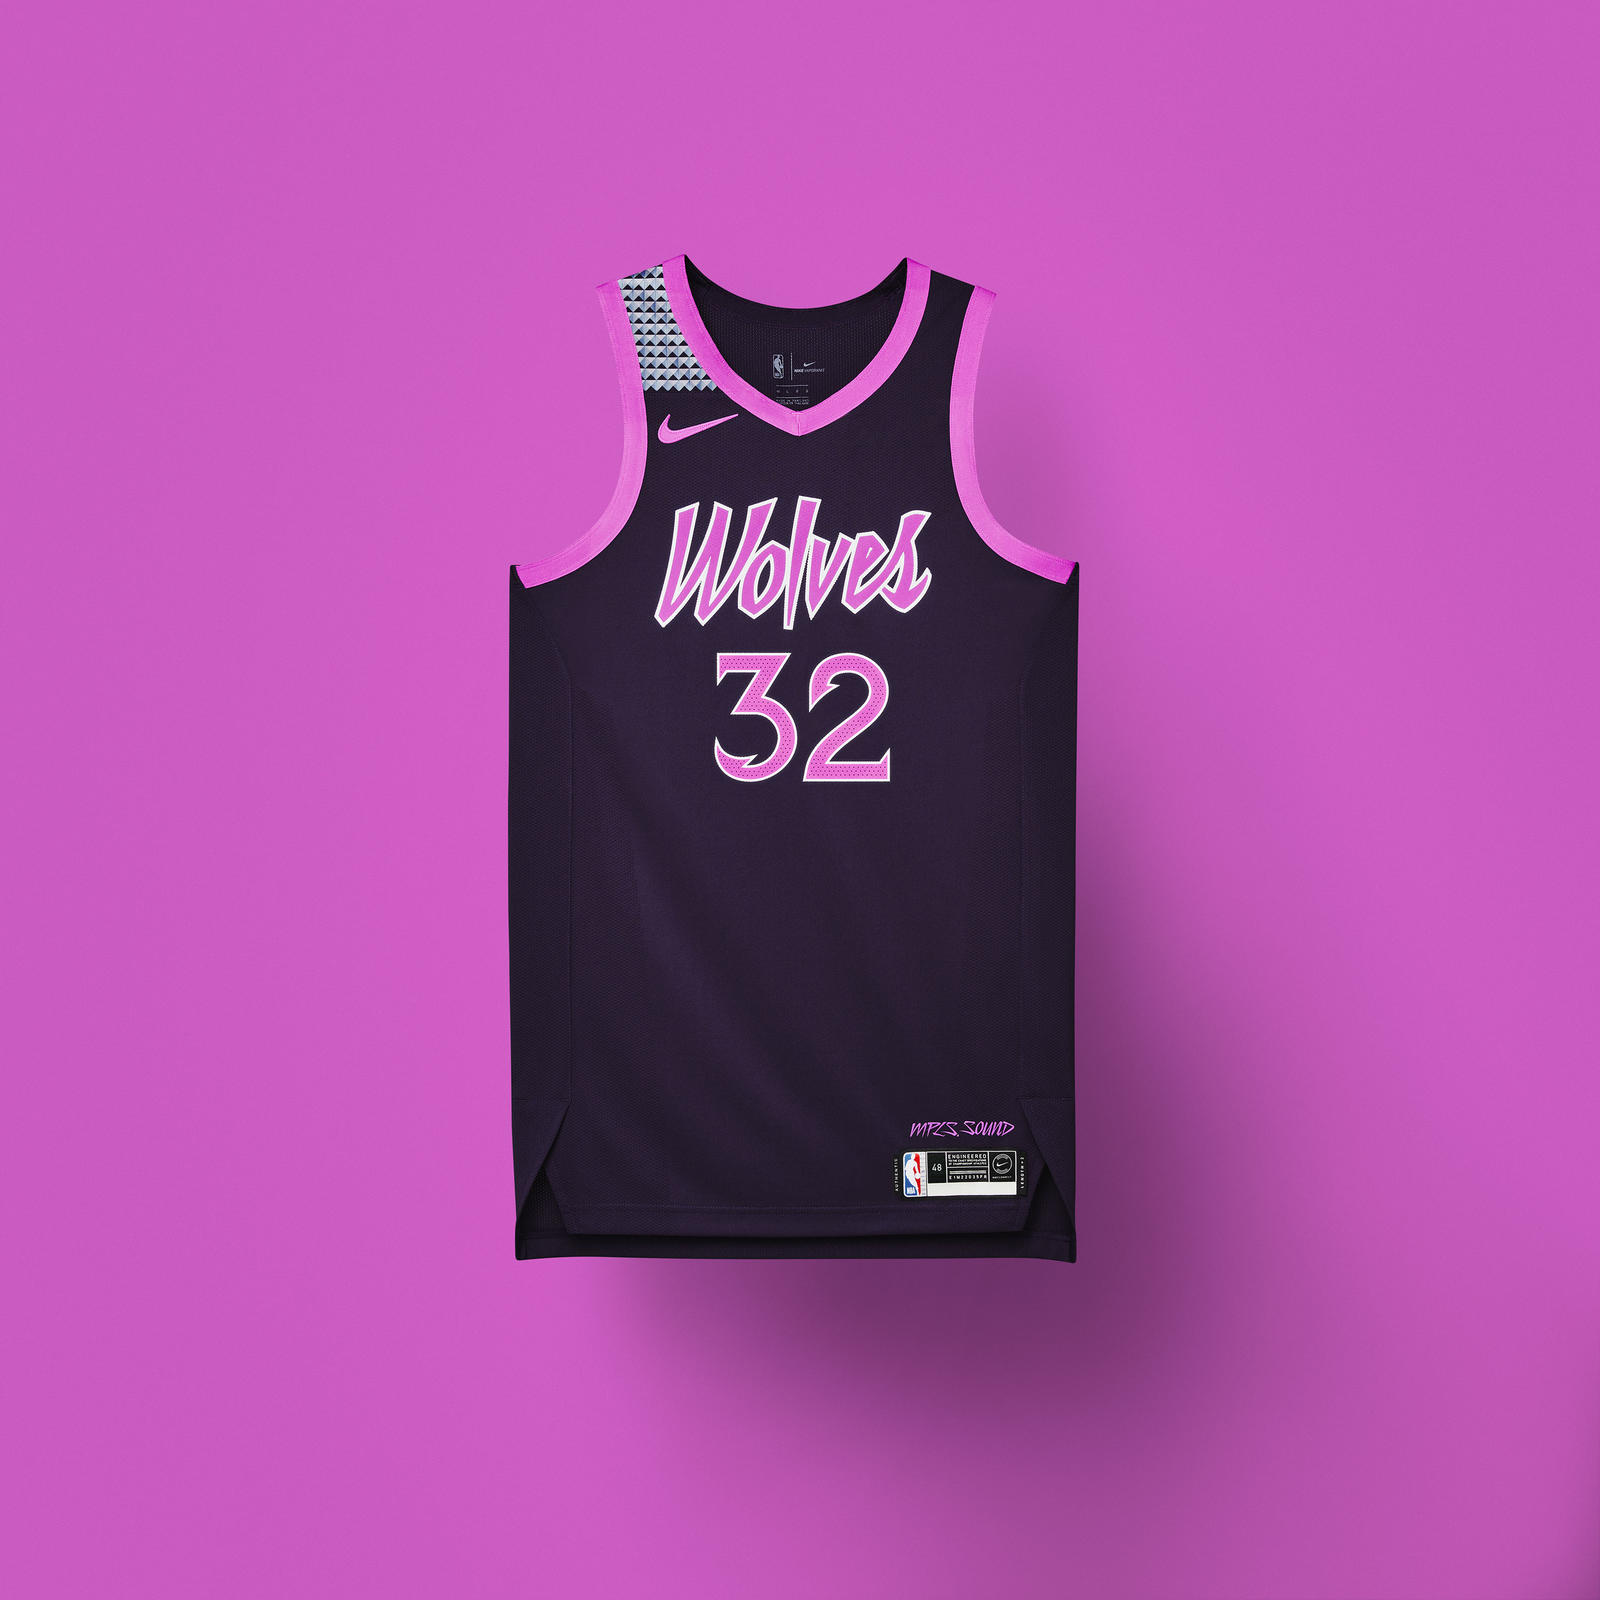 fd61422ad76 Ranking every  City Edition  jersey